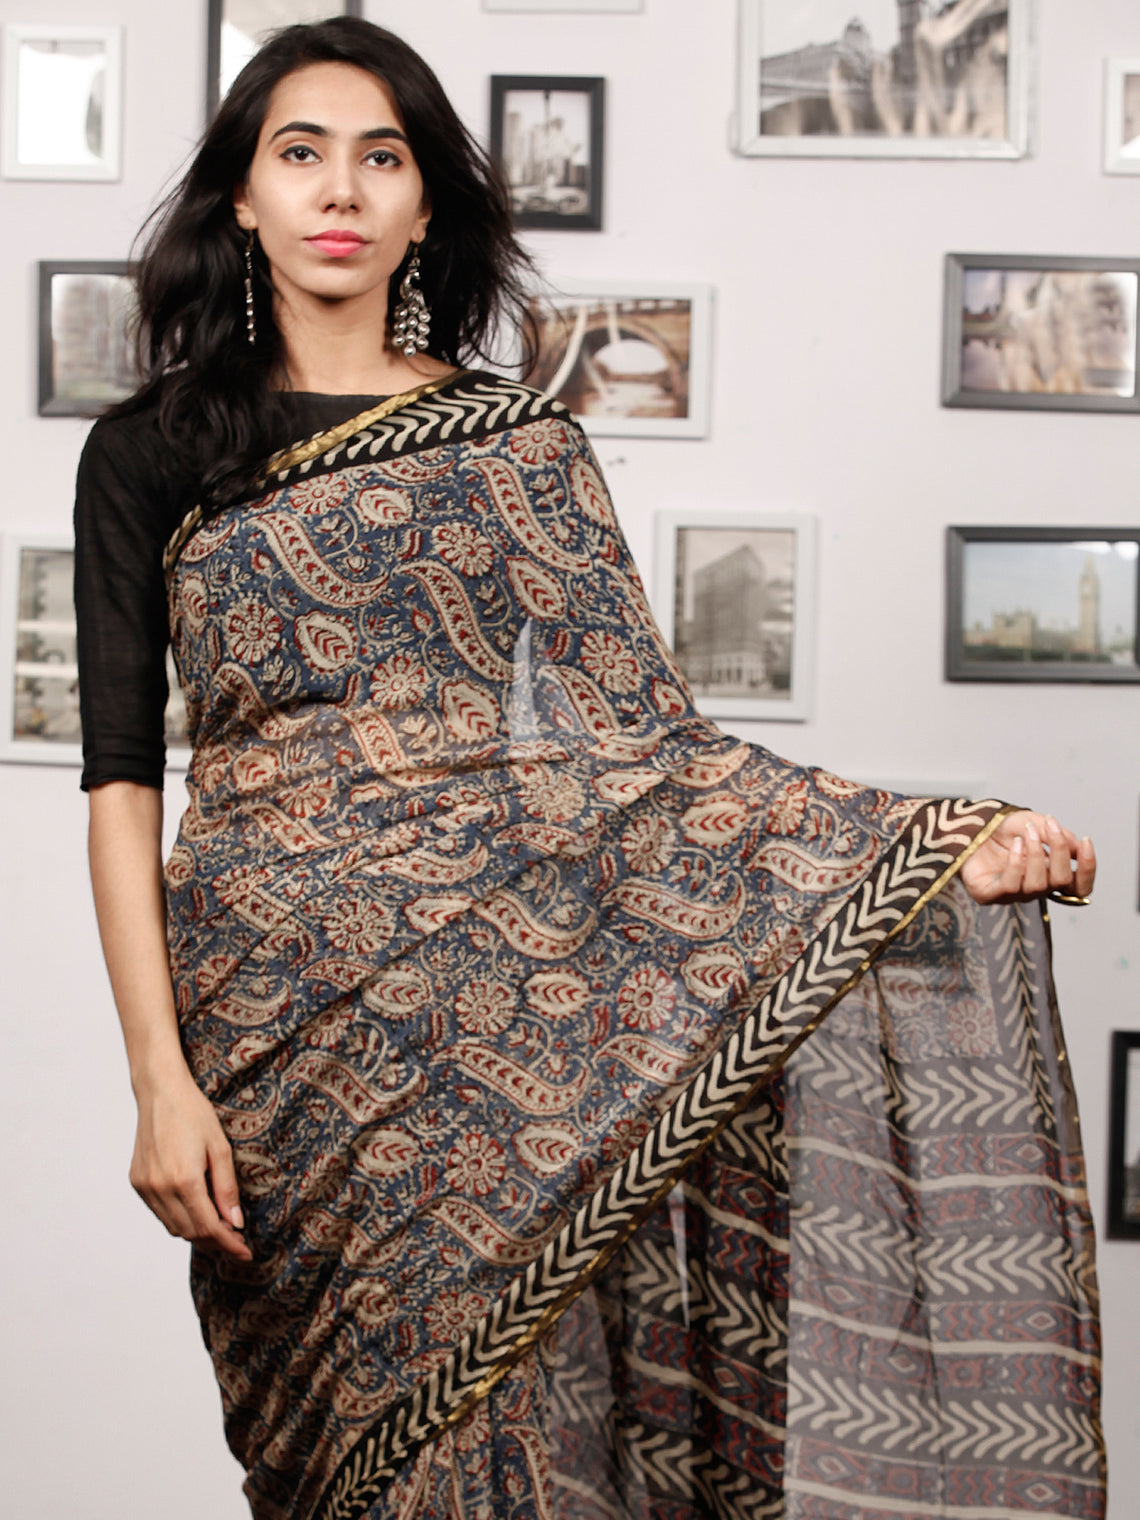 Beige Blue Rust Black Hand Block Printed Chiffon Saree with Zari Border - S031703504